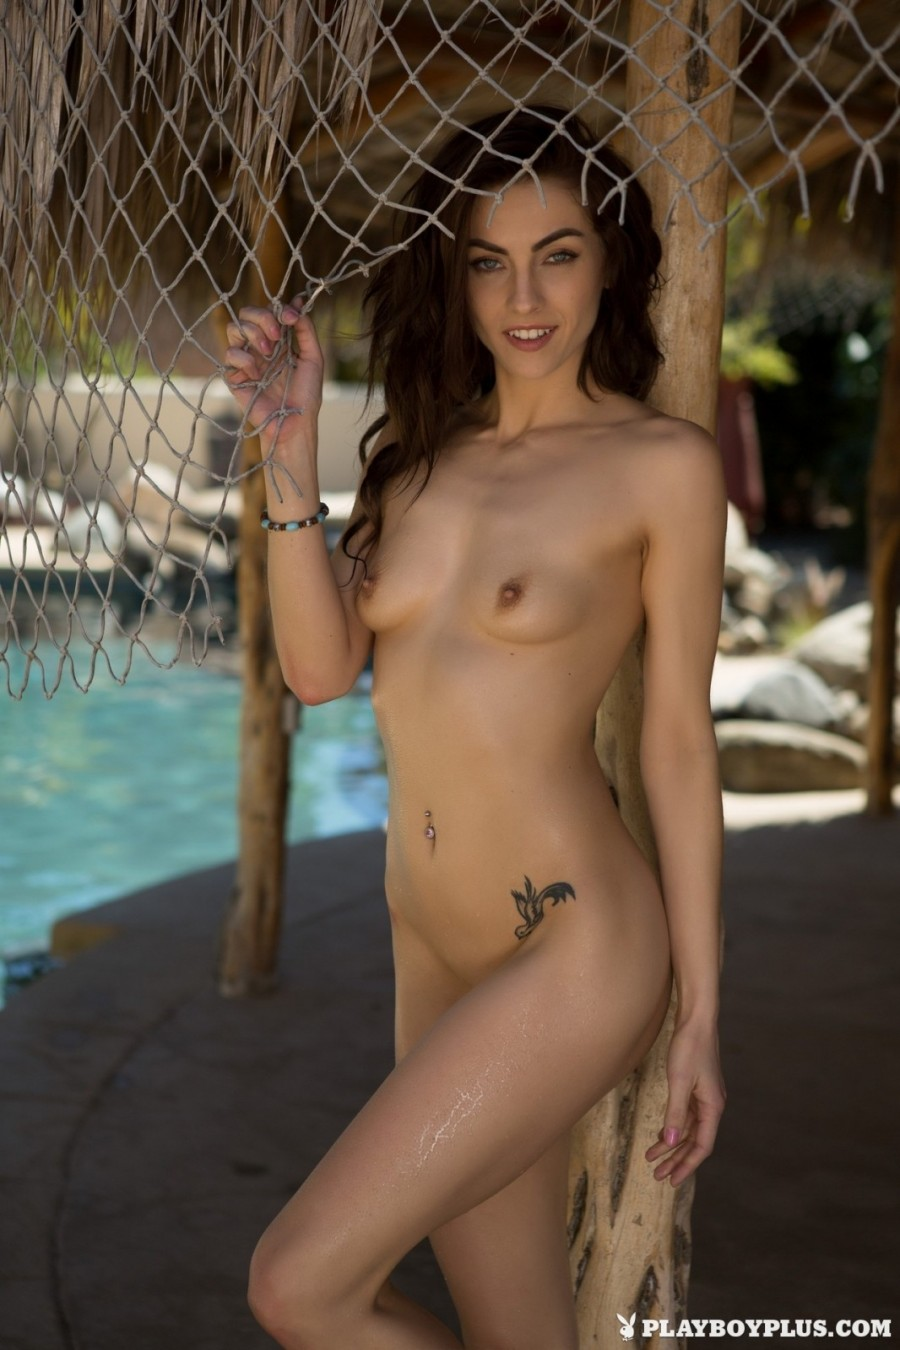 Brunette model shows off nude outdoors